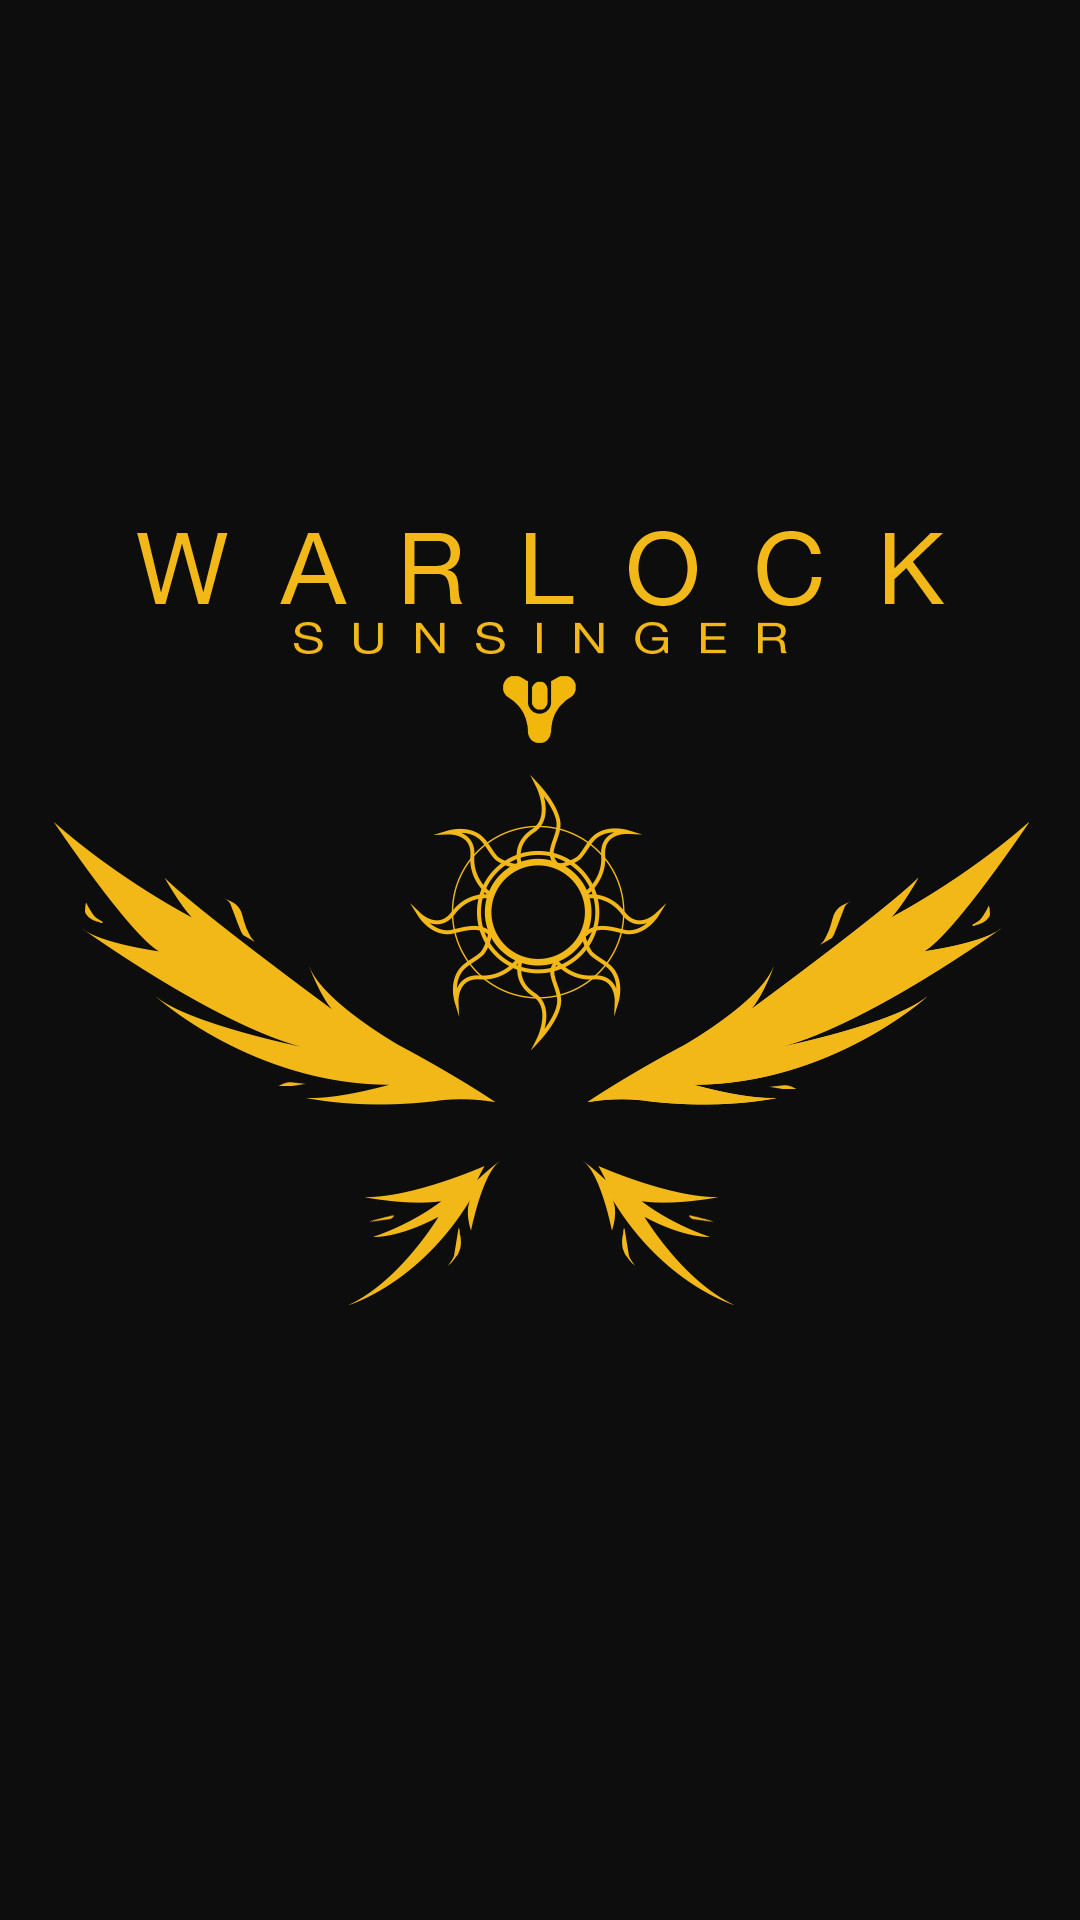 1080x1920 Destiny Warlock Sunsinger Wallpaper